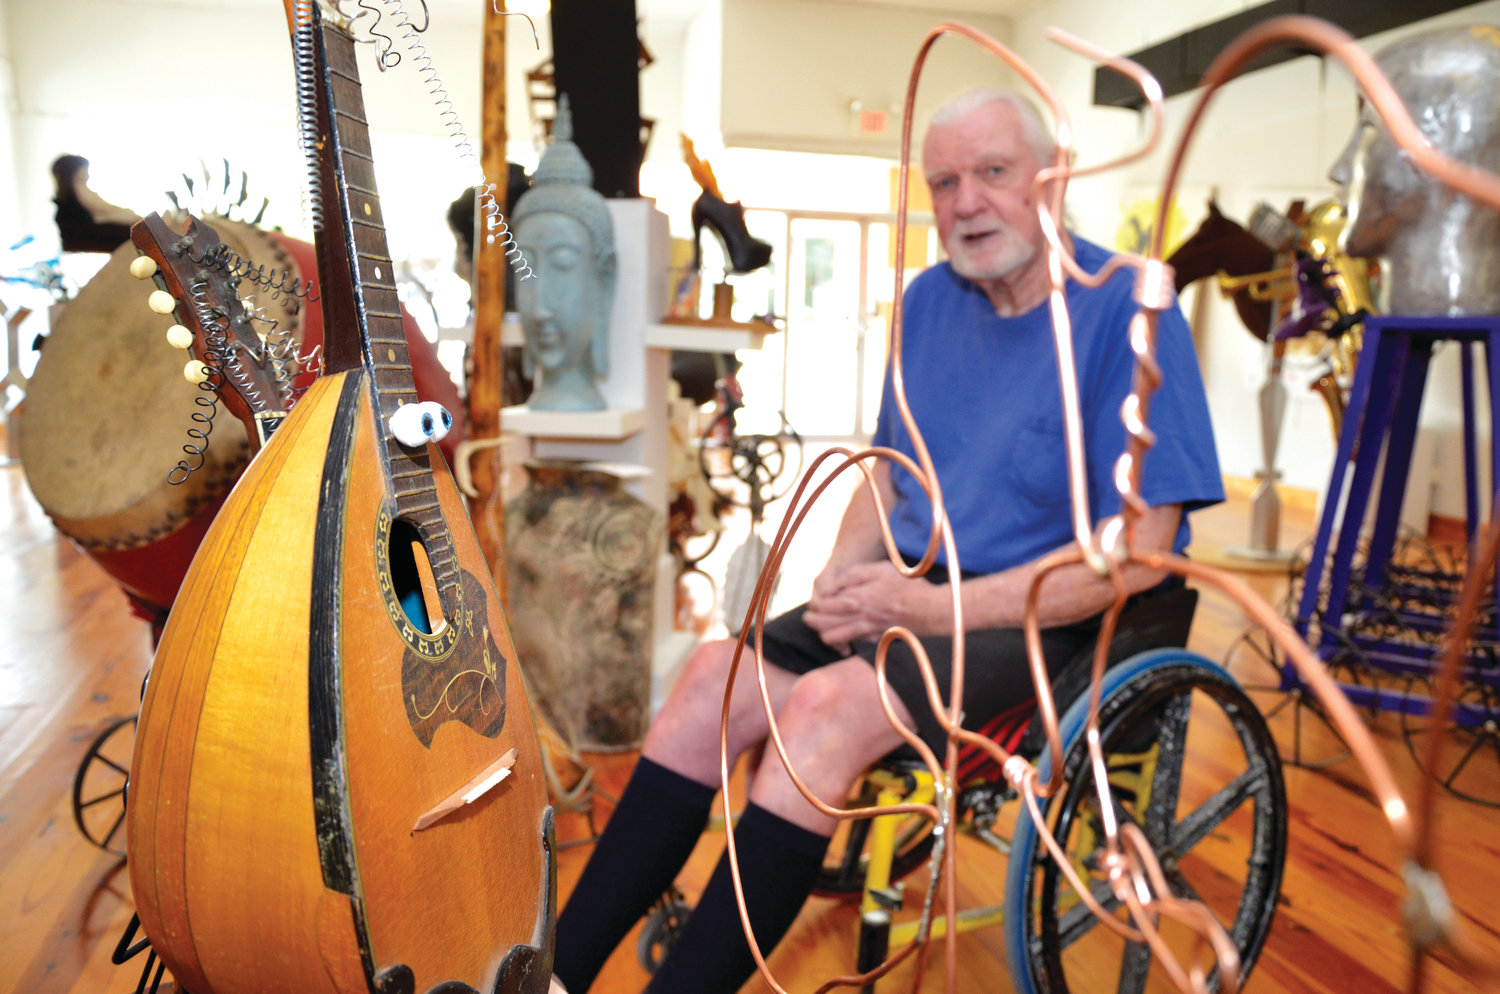 He's an unconventional artist, using found objects and pieces to fit into his art. Here, an old mandolin plays a new tune as a piece of art in Roger Person's studio.